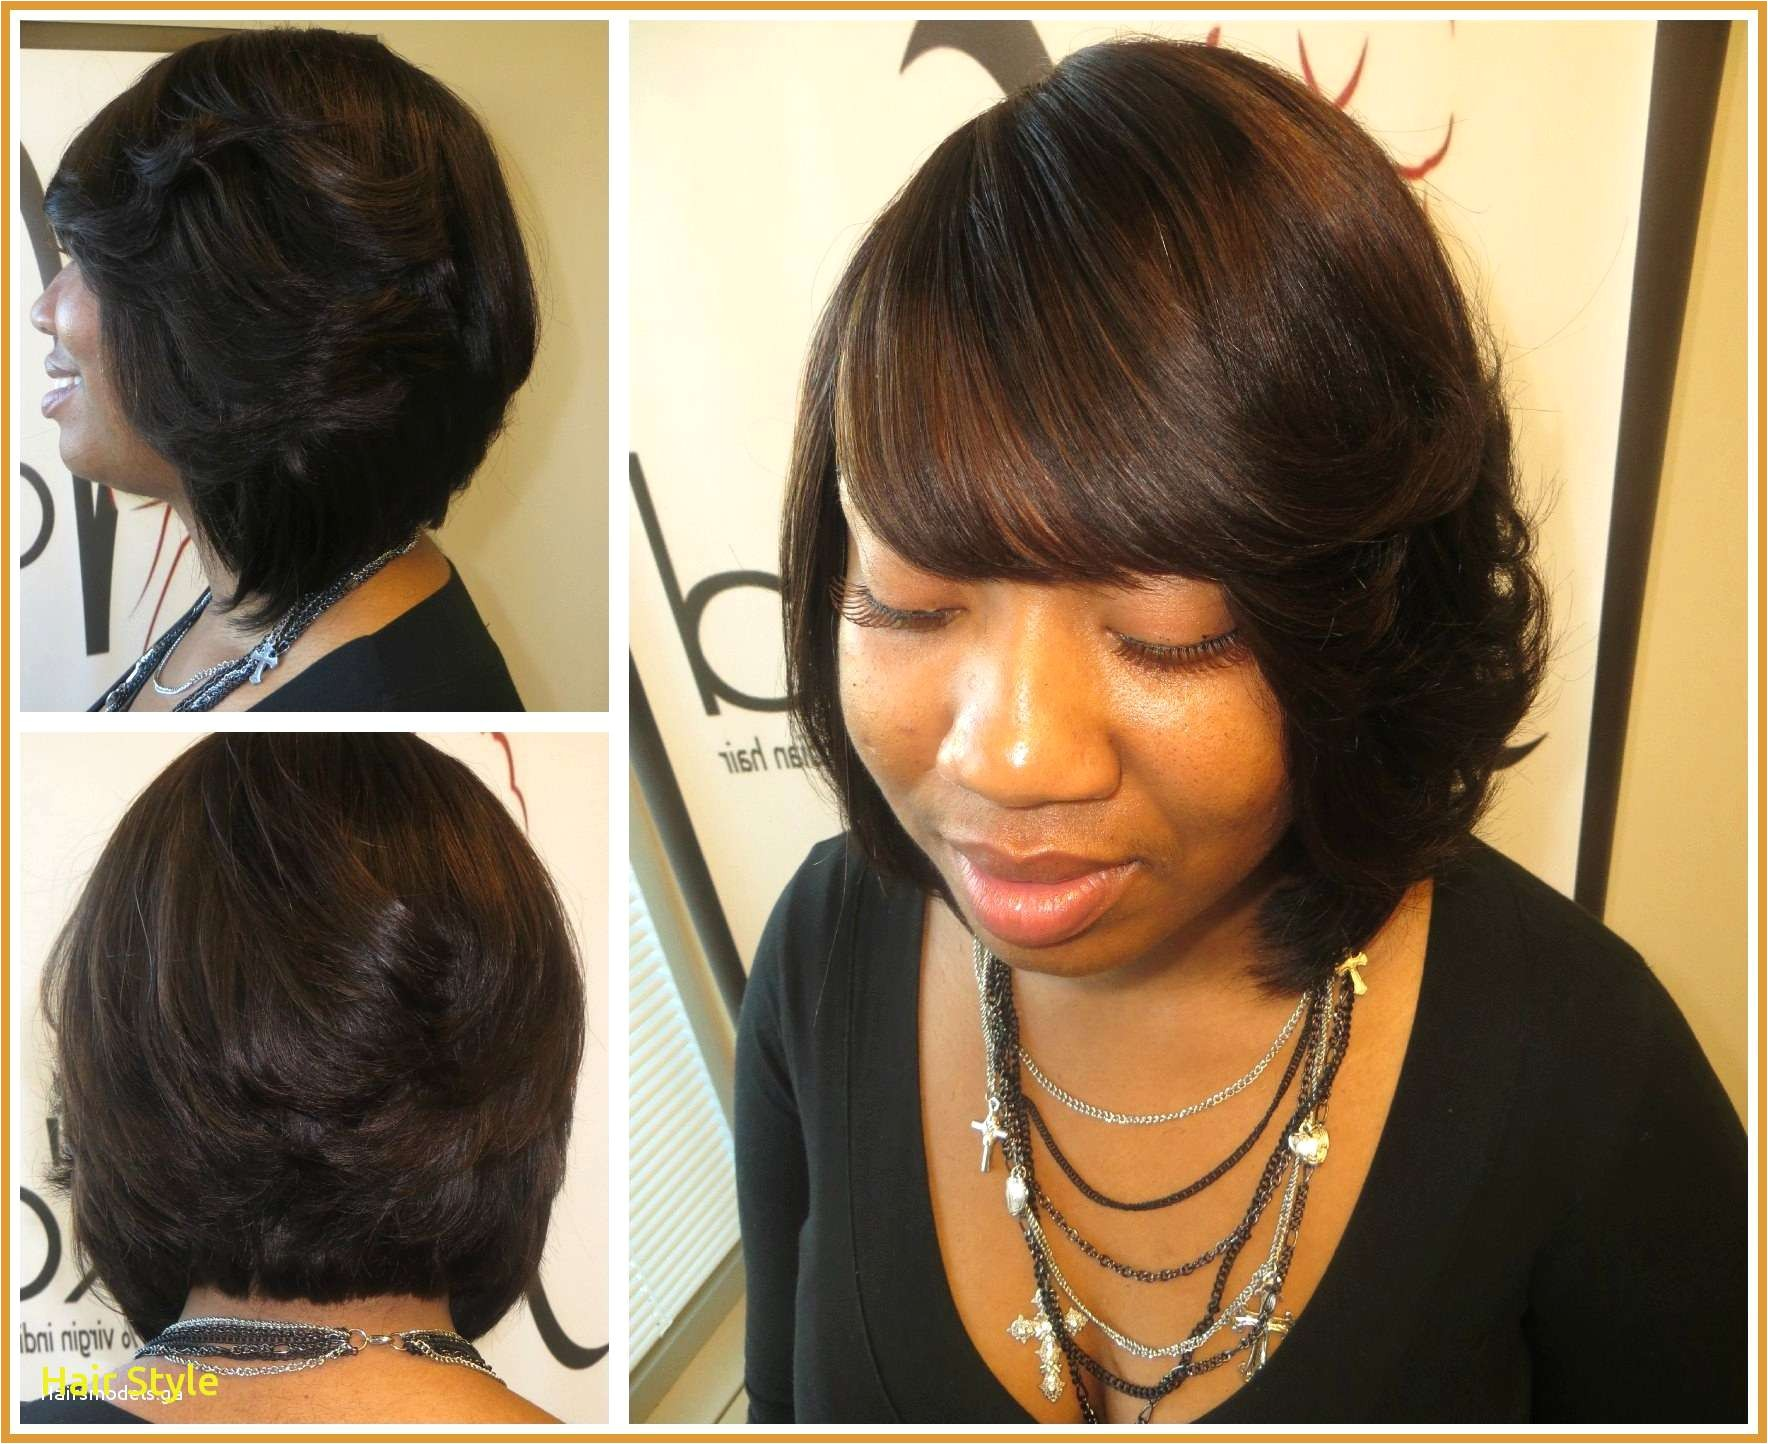 Bob Hairstyles for Curly Hair Curly Bob Haircuts Curly Bob Hairstyles Cool Very Curly Hairstyles